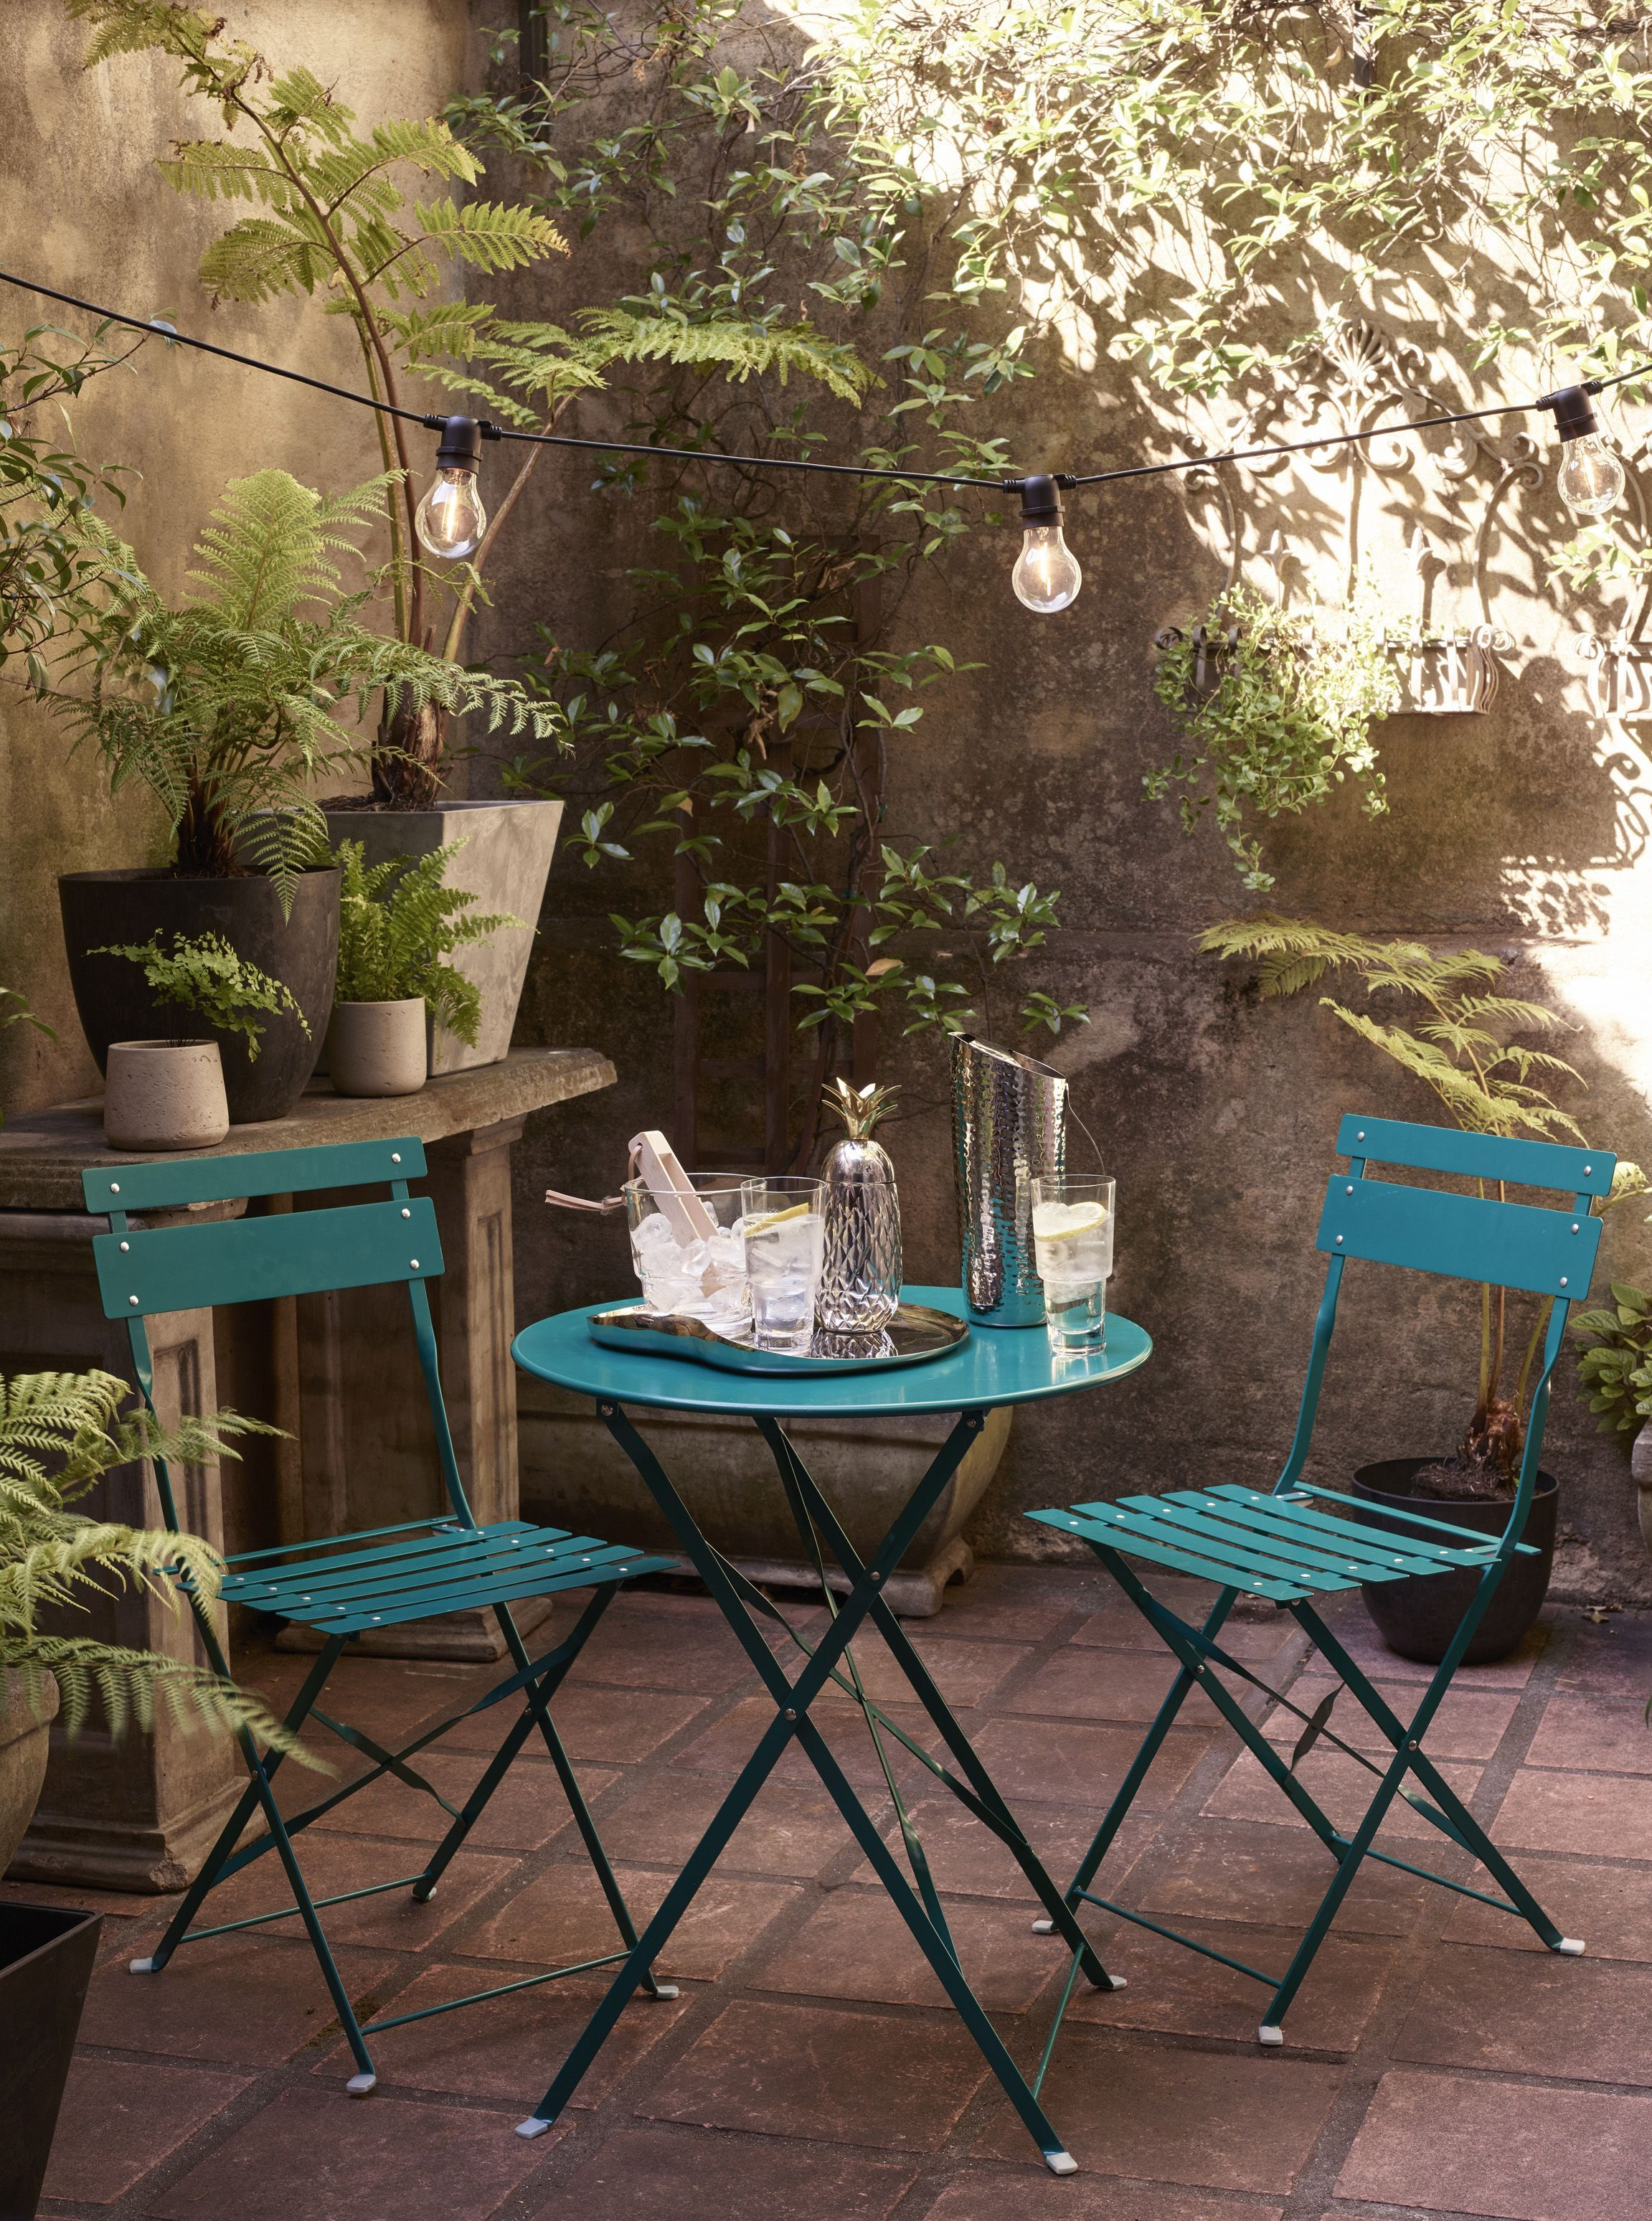 This luxury garden table and chairs set would be suitable for